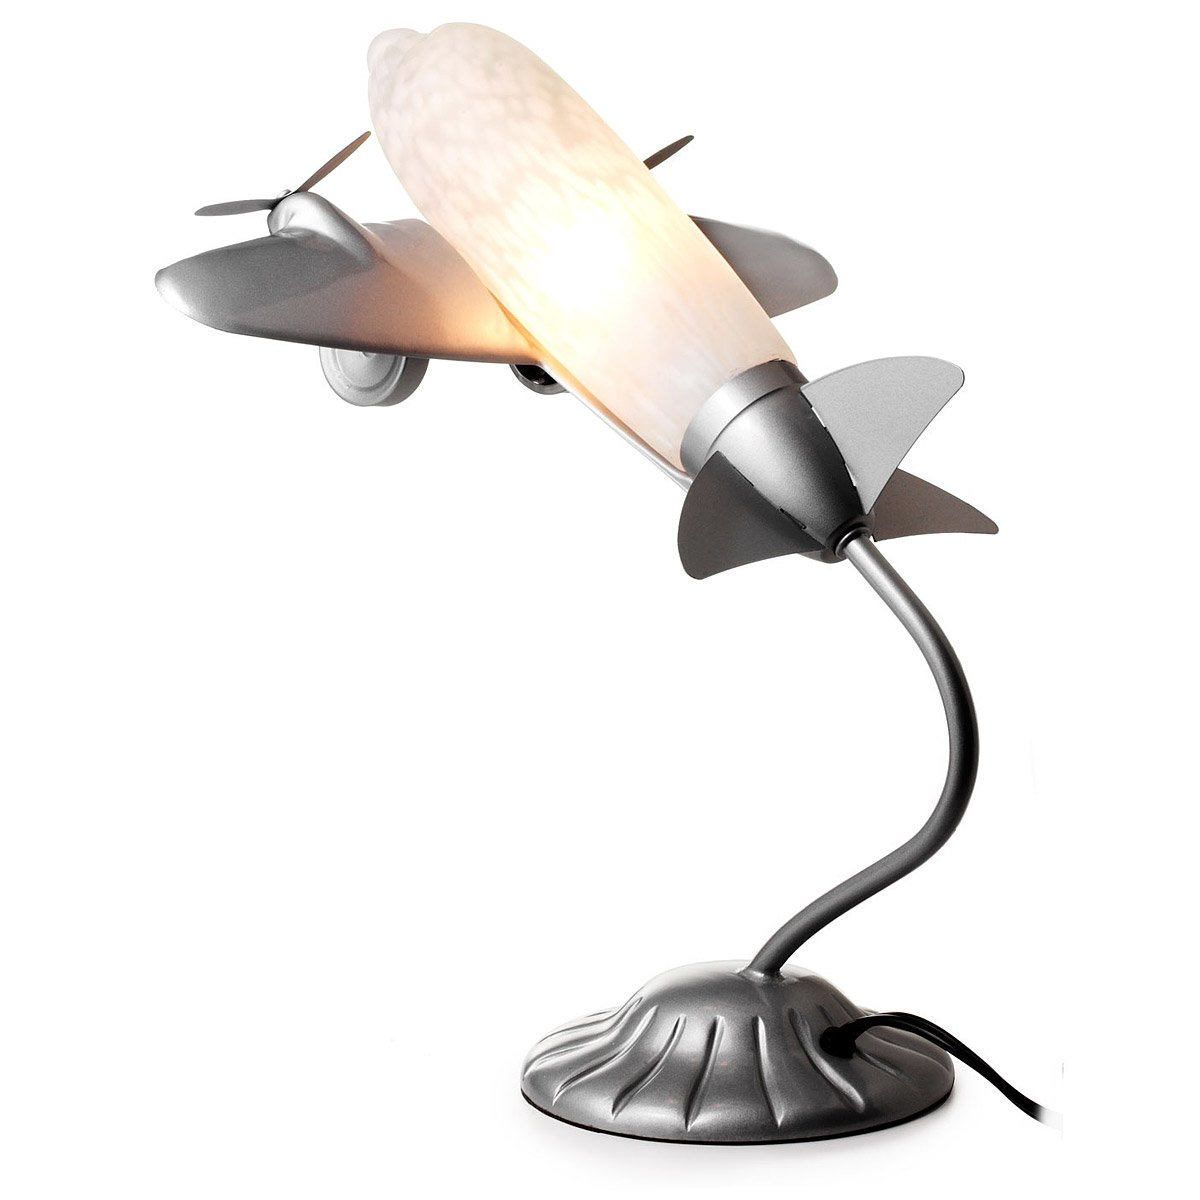 Airplane Lamp 1 thumbnail - Airplane Lamp Plane Desk Lamp For Kids And Adults UncommonGoods